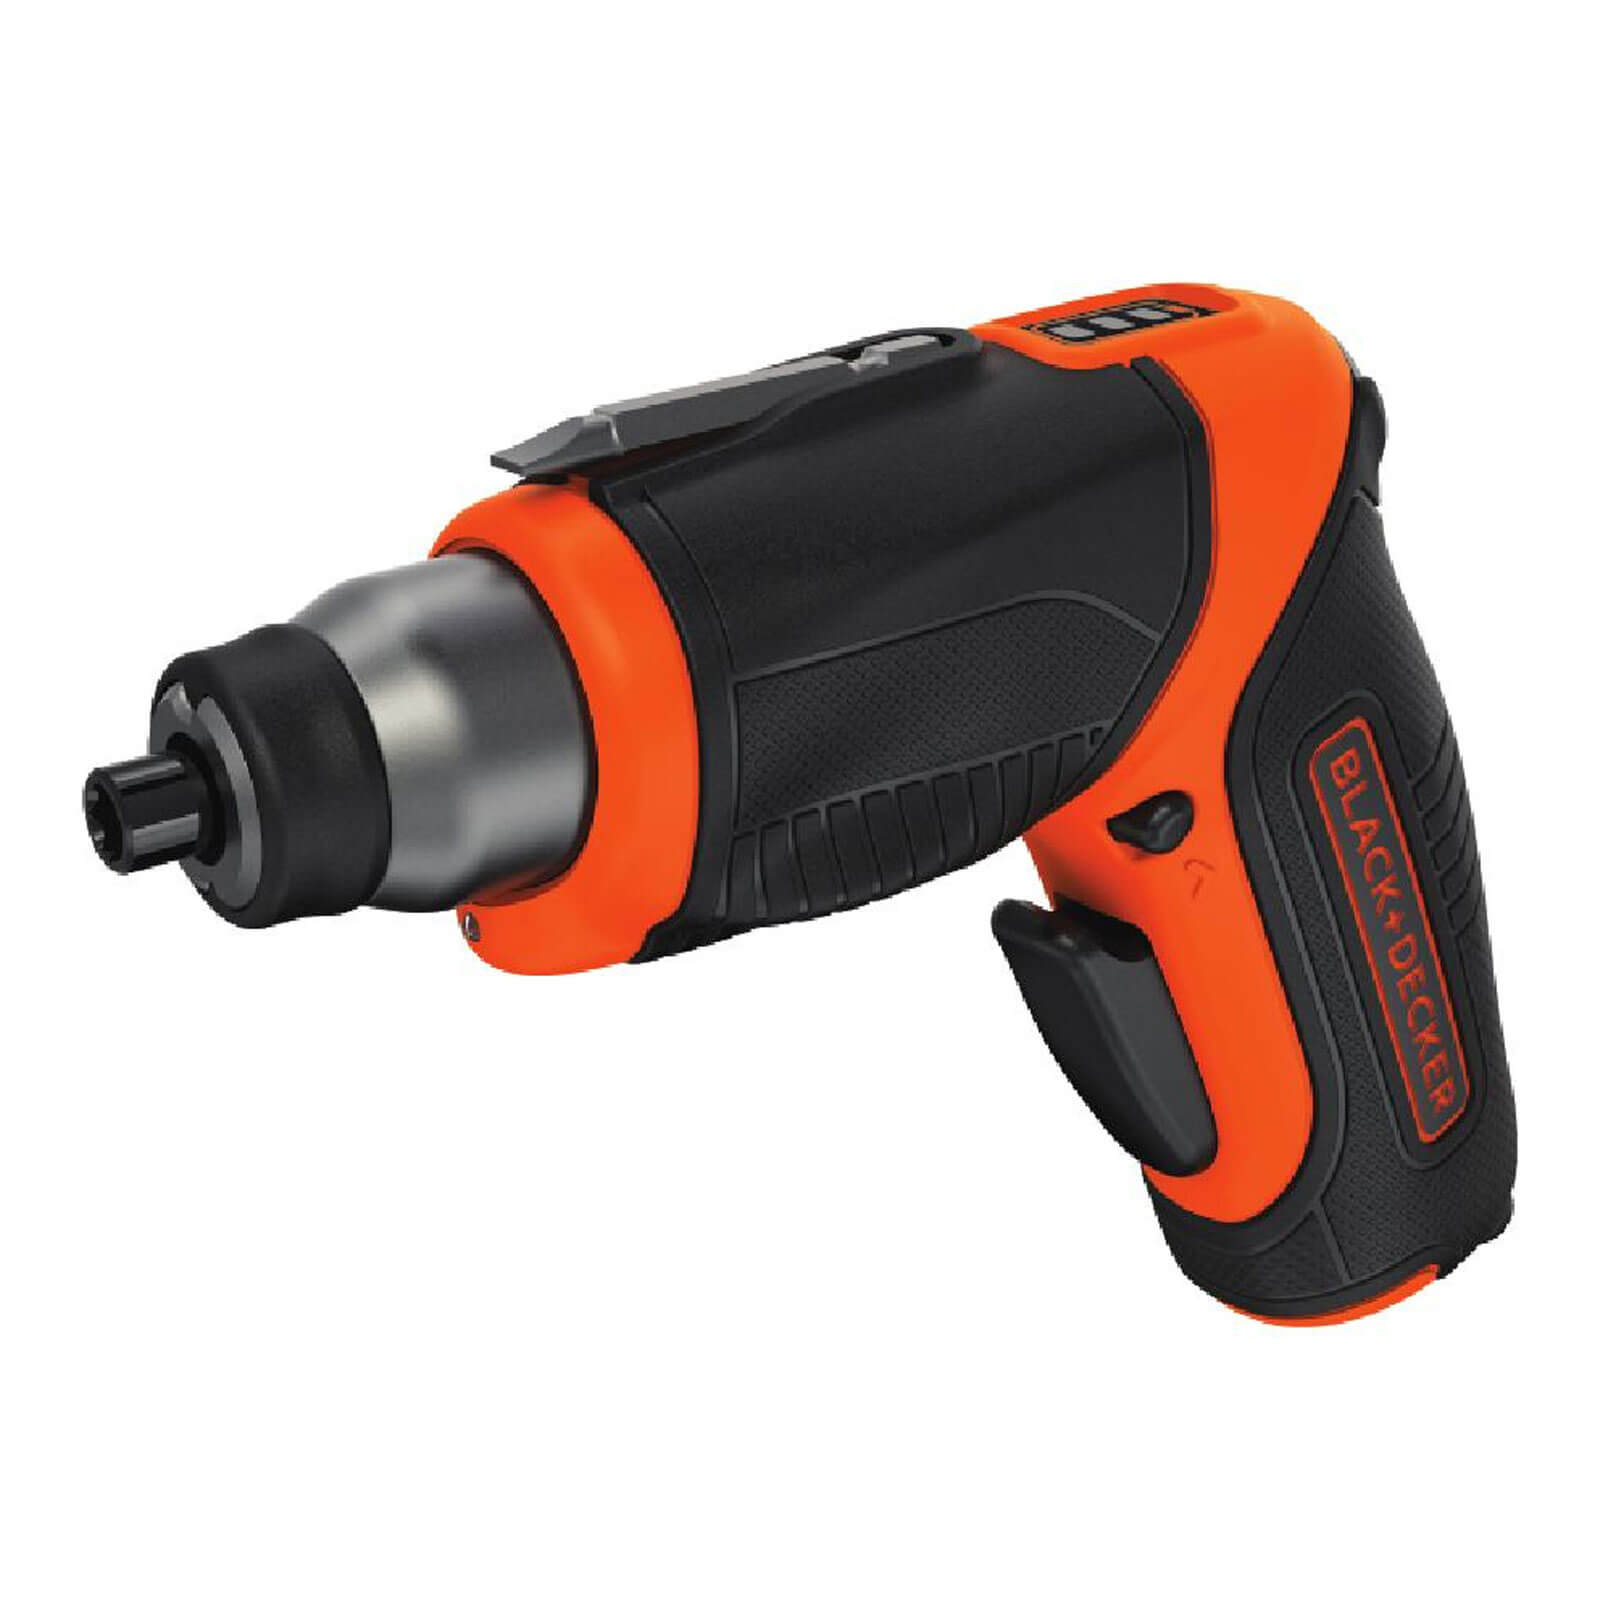 Black & Decker CS3653LC HPP 3.6v Cordless Screwdriver with Integrated Lithium Ion Battery